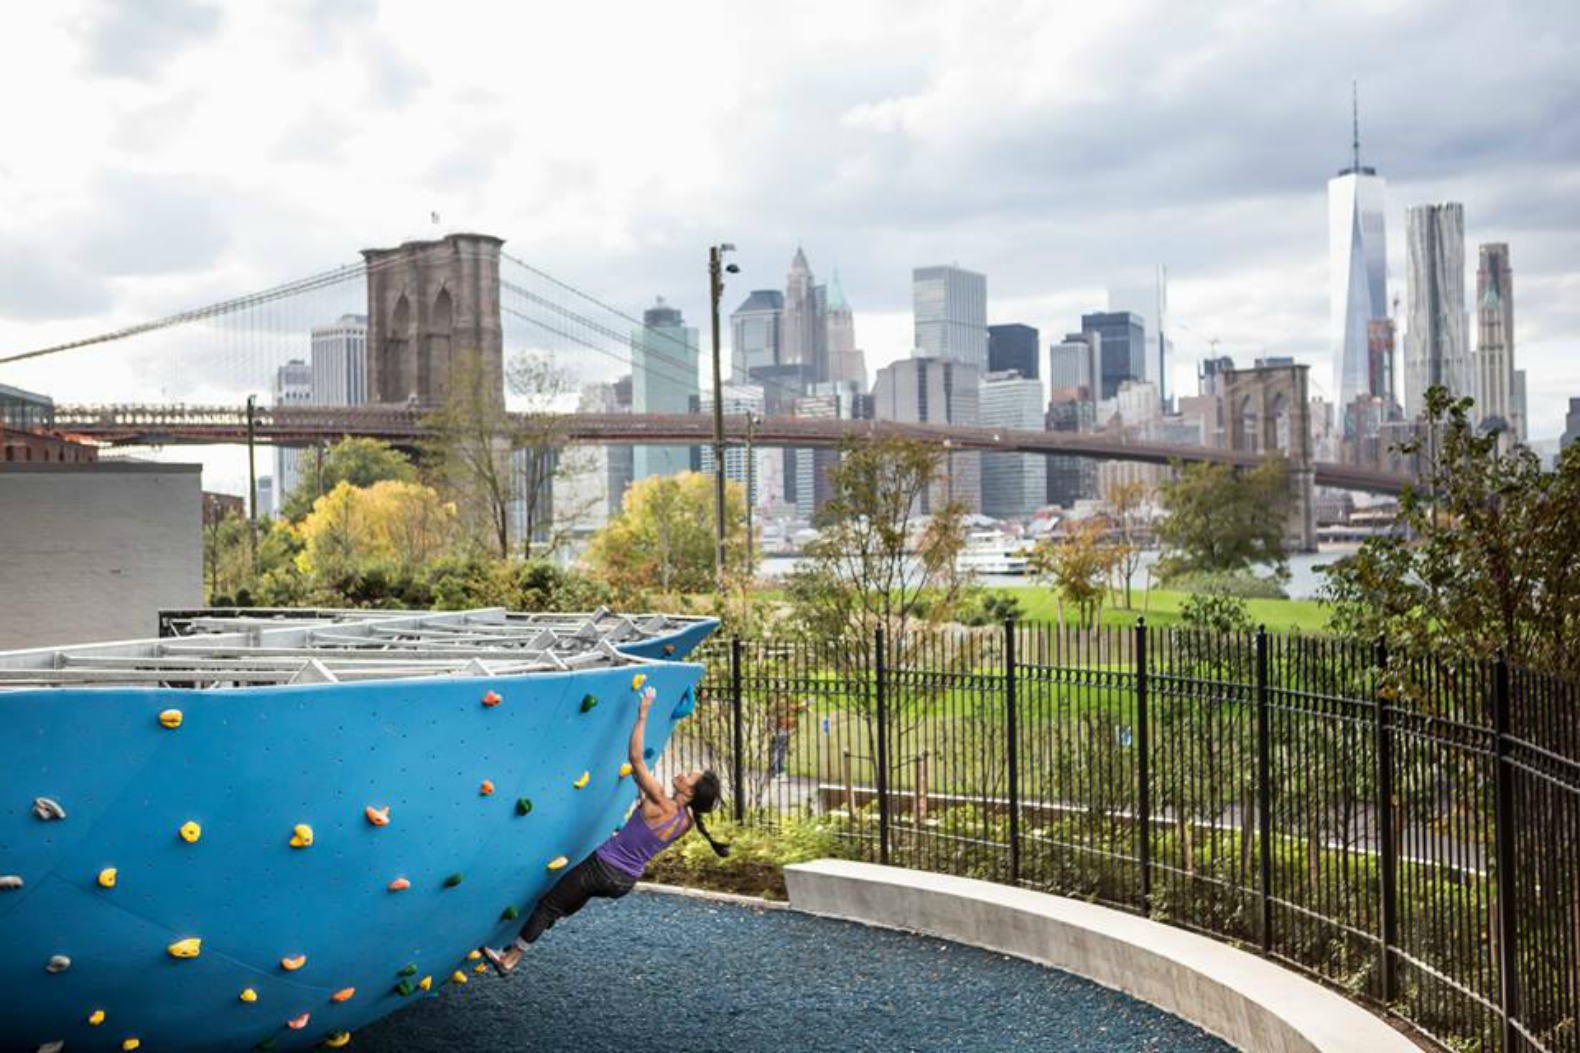 North America's largest outdoor bouldering gym set to open at Brooklyn Bridge Park